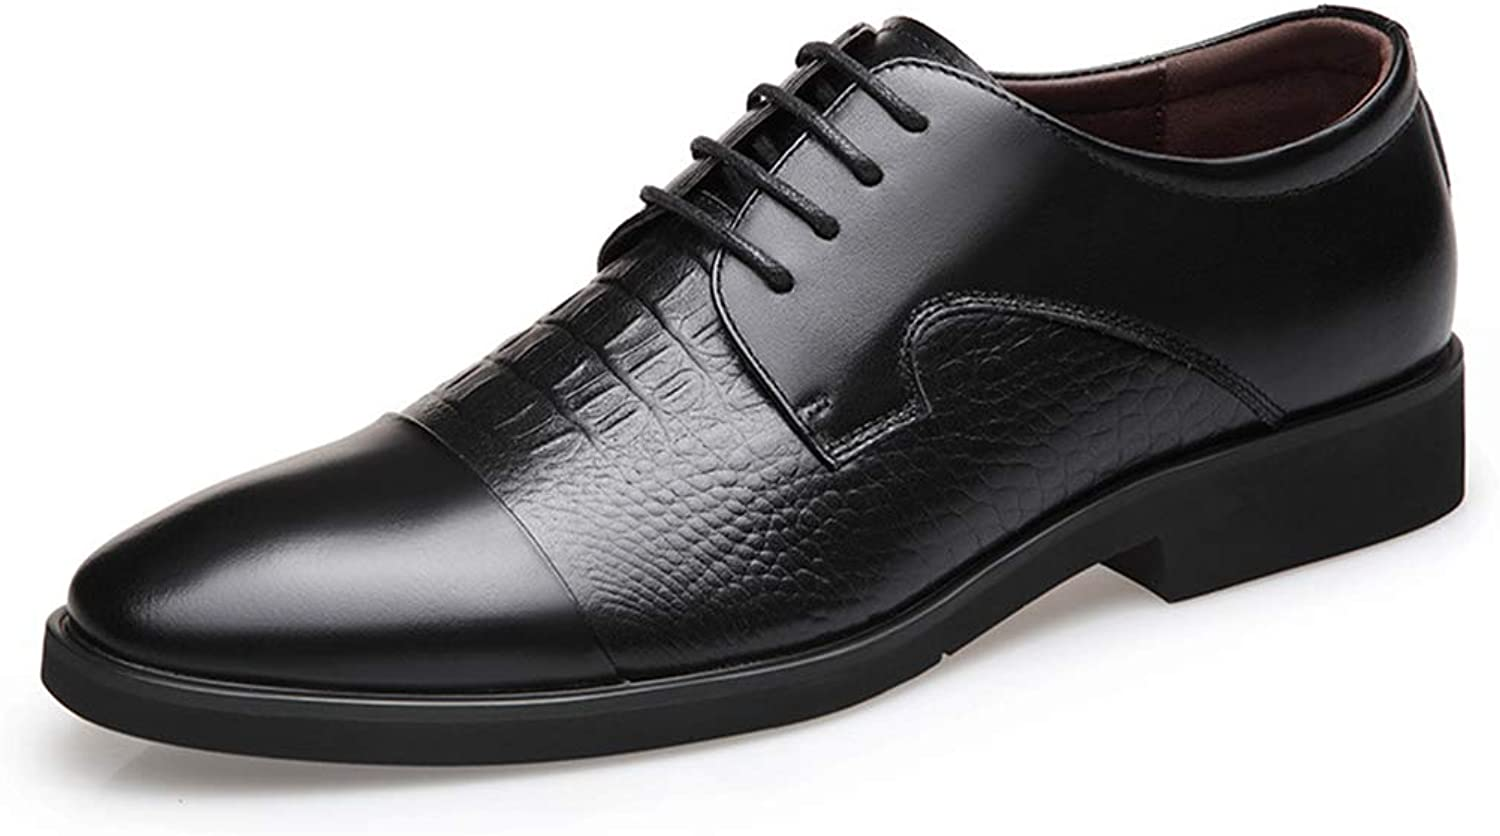 Mens Leather shoes Black Casual Flat Loafers Fashion Slip On Driving shoes Business Formal Leather shoes,Black,44